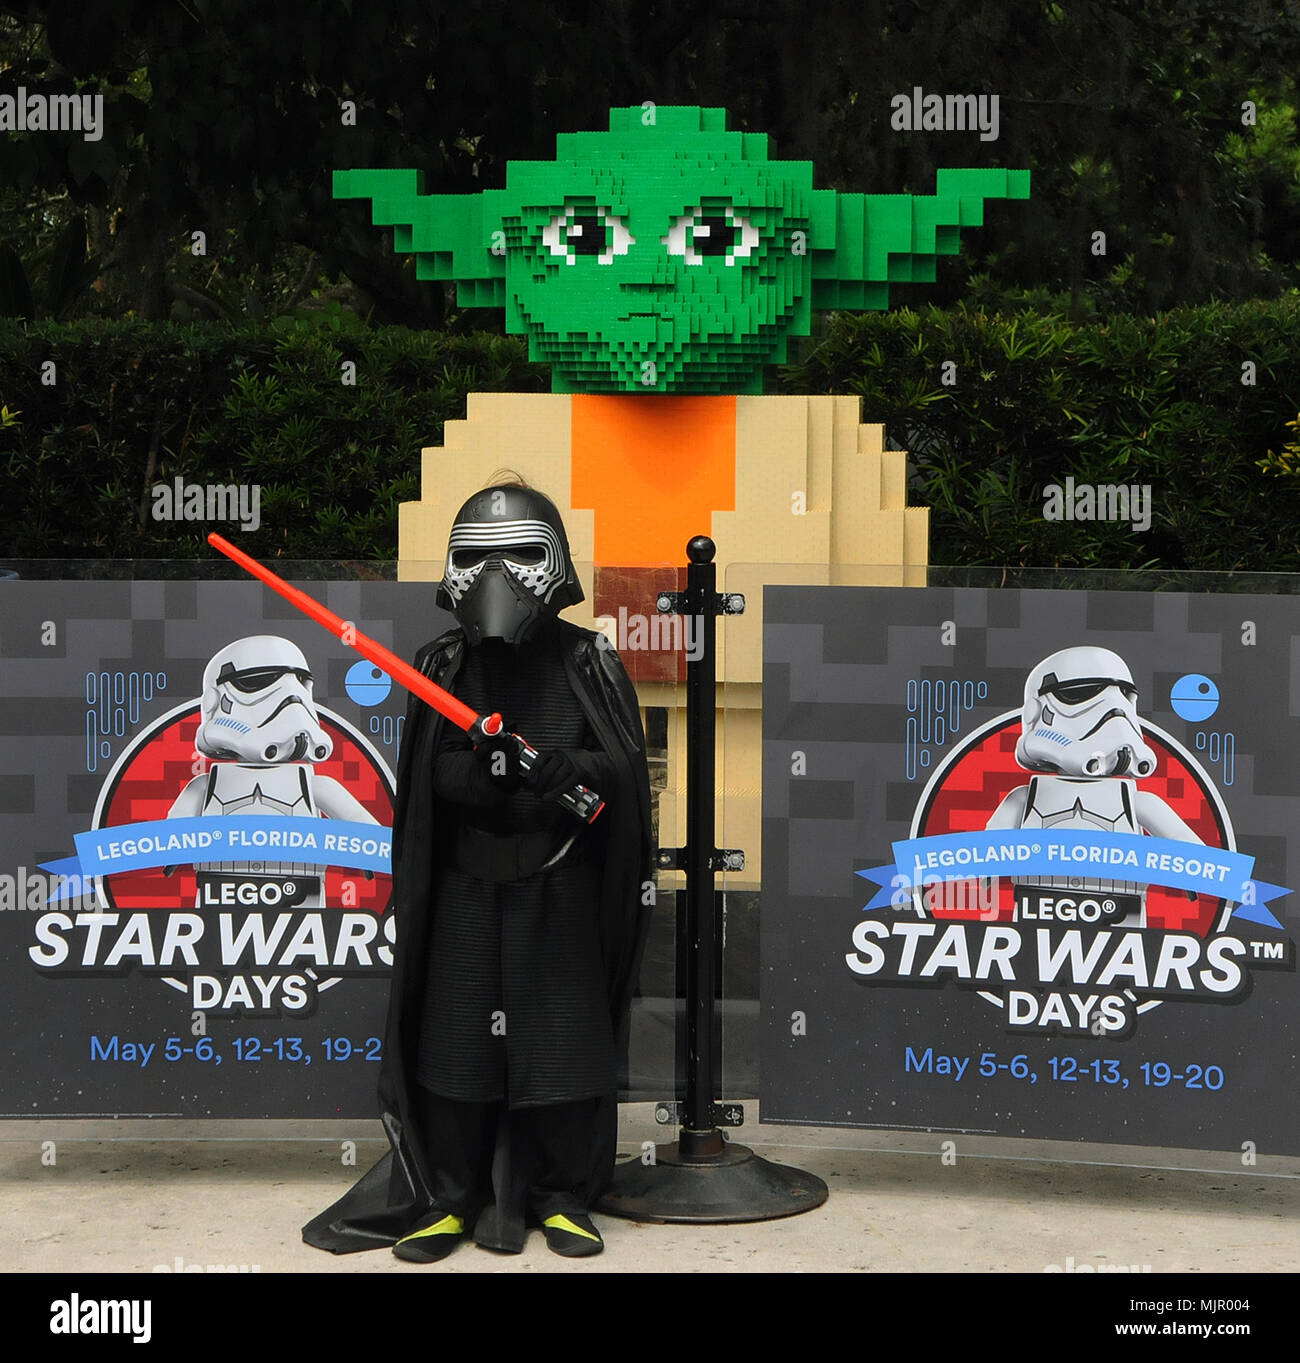 b100509c7ff07 Star Wars Character Stock Photos   Star Wars Character Stock Images ...